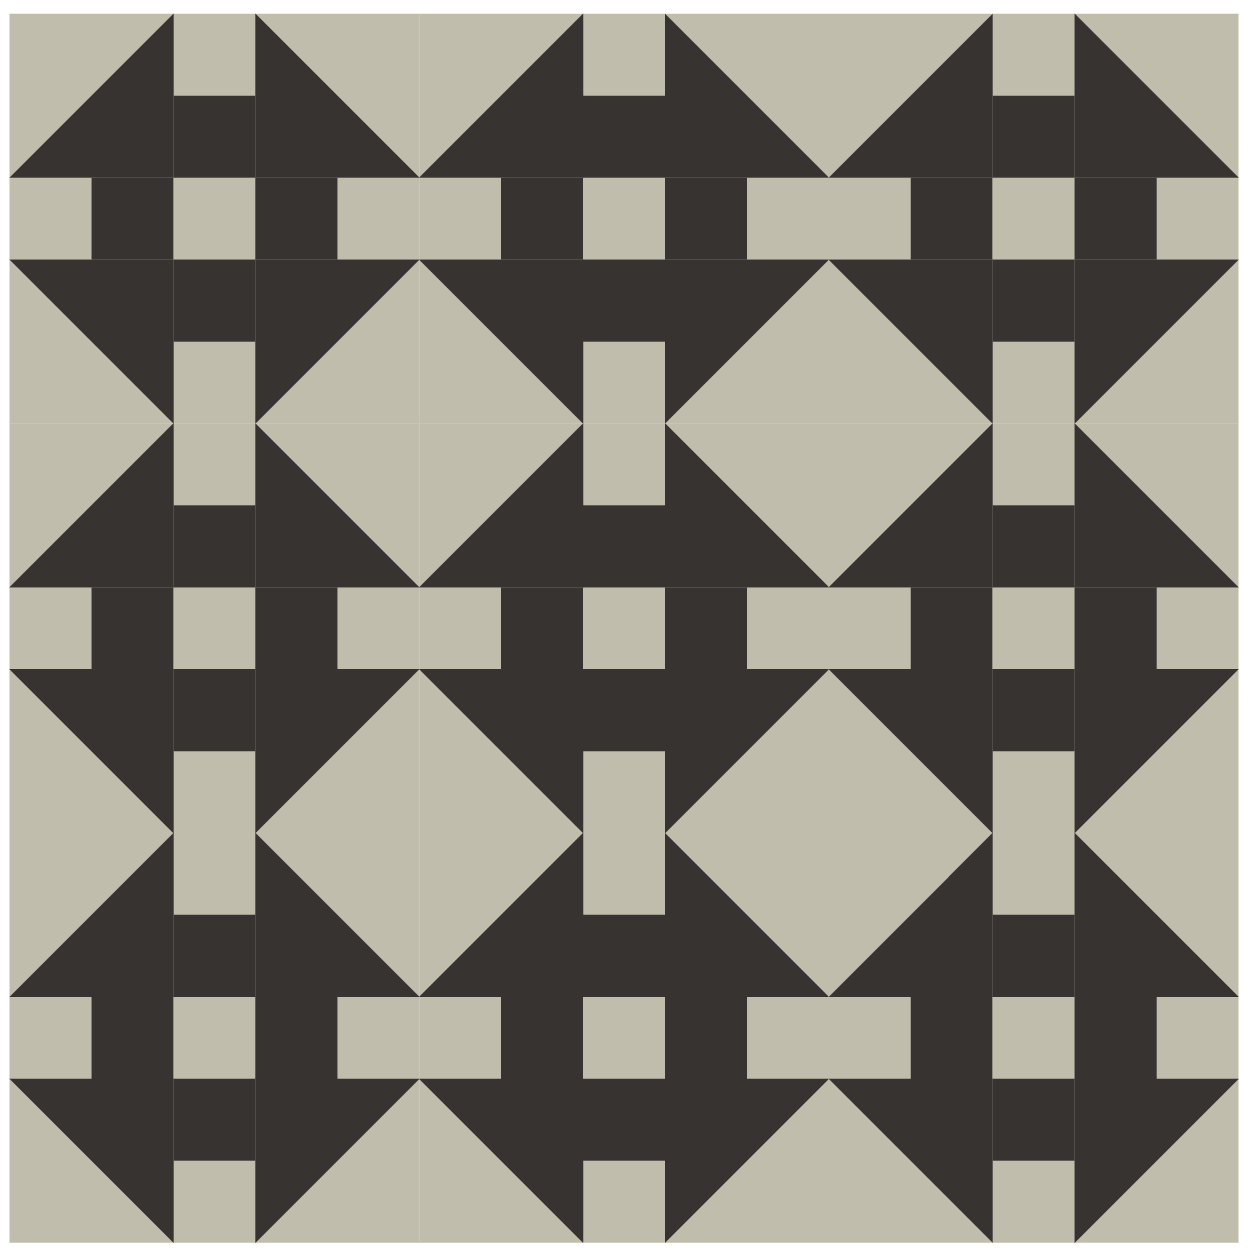 Illustration of A grouping of Double Wrench Quilt Blocks